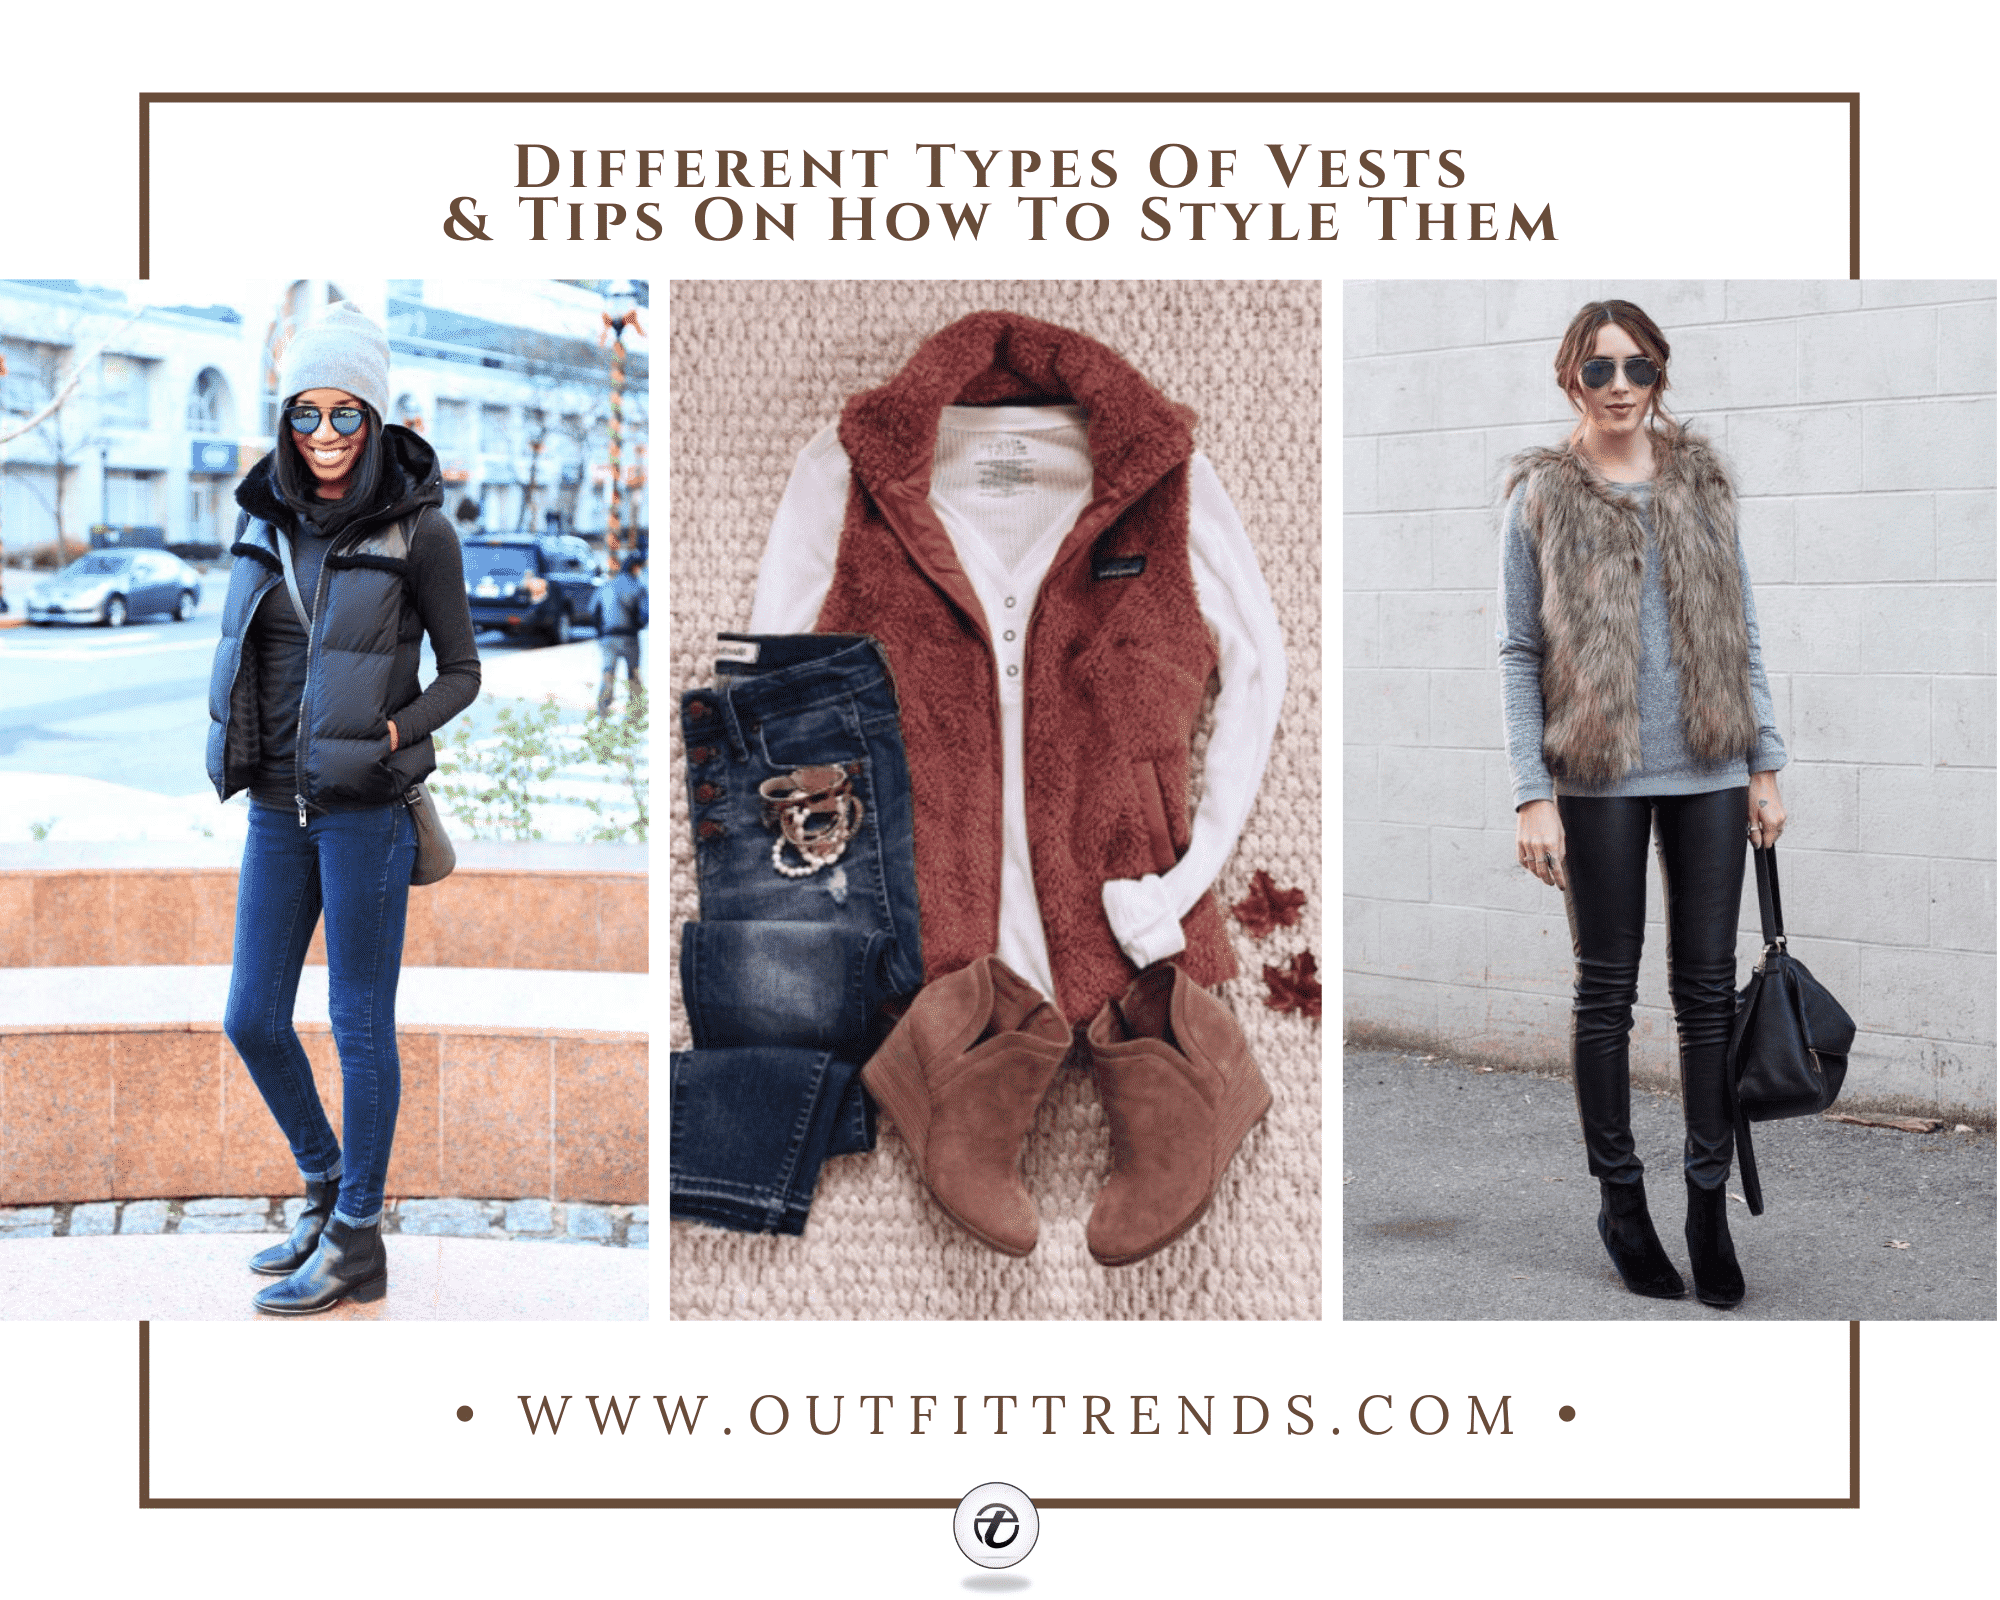 What to Wear with a Vest25 Best Vest Outfit Ideas for Women